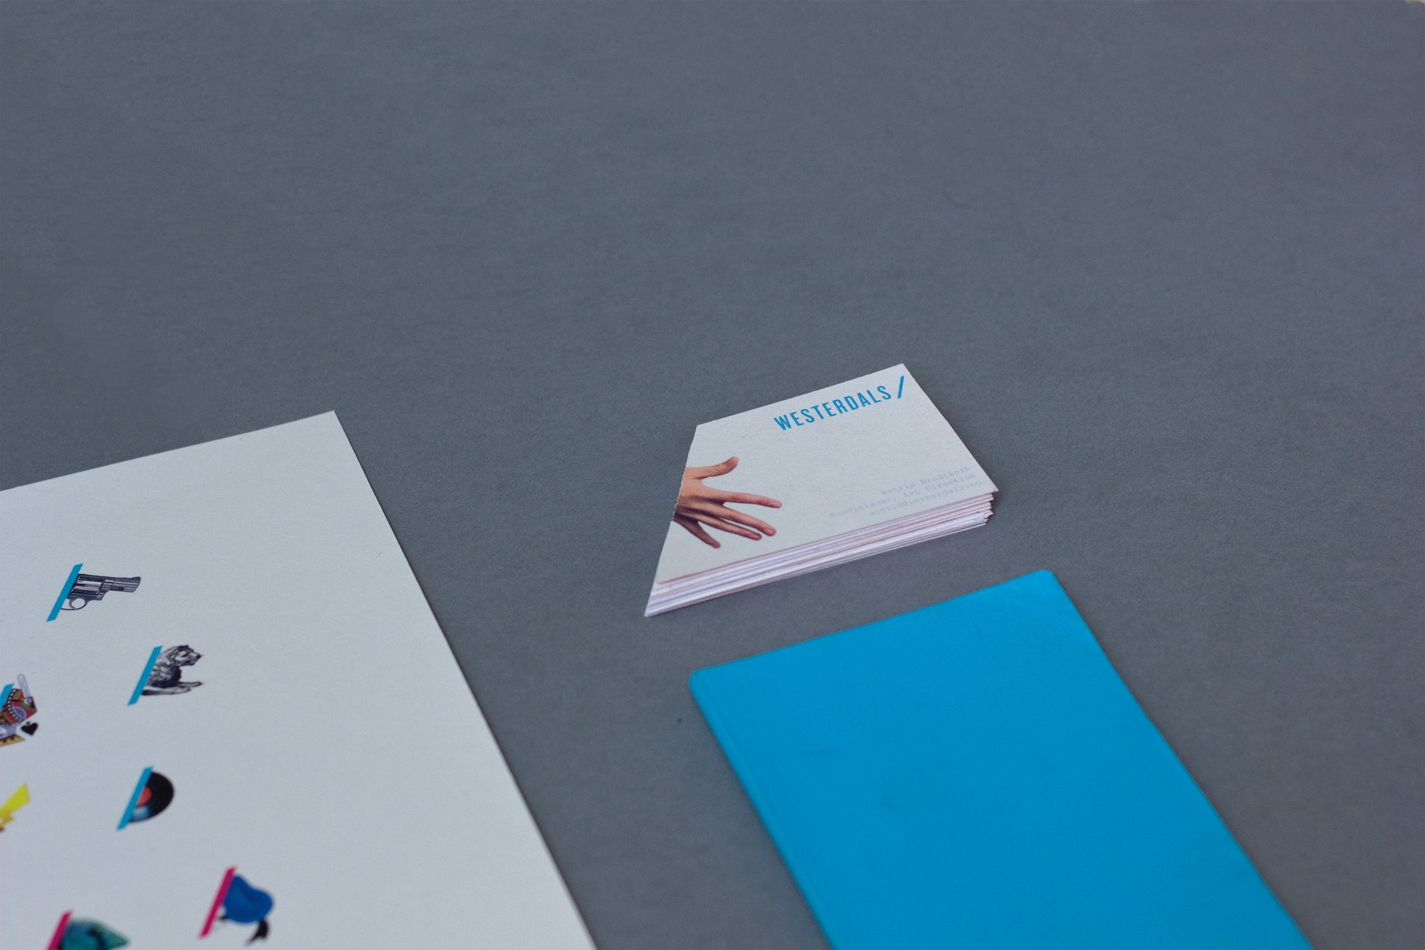 Westerdals - Visual Identity - vicentewest